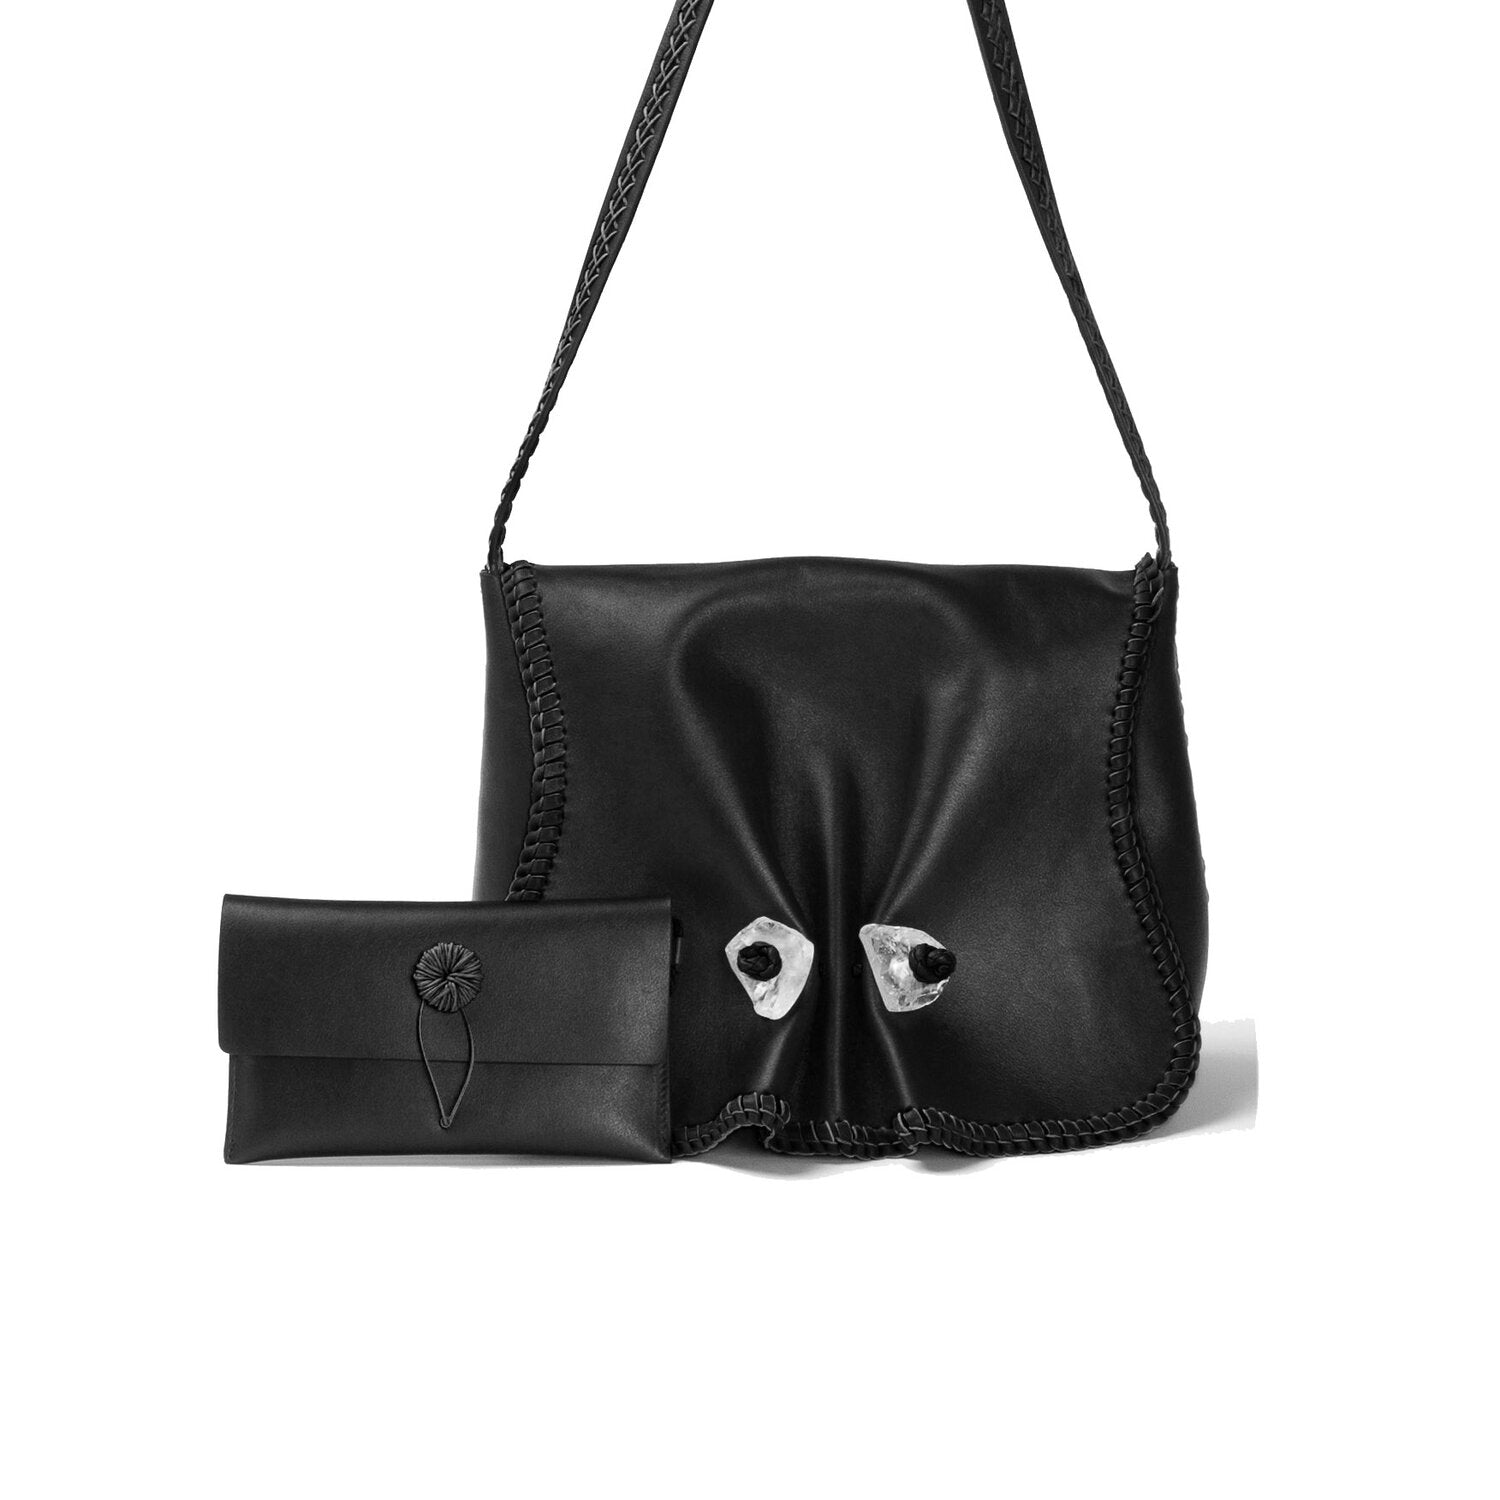 Hydra Crossbody Black